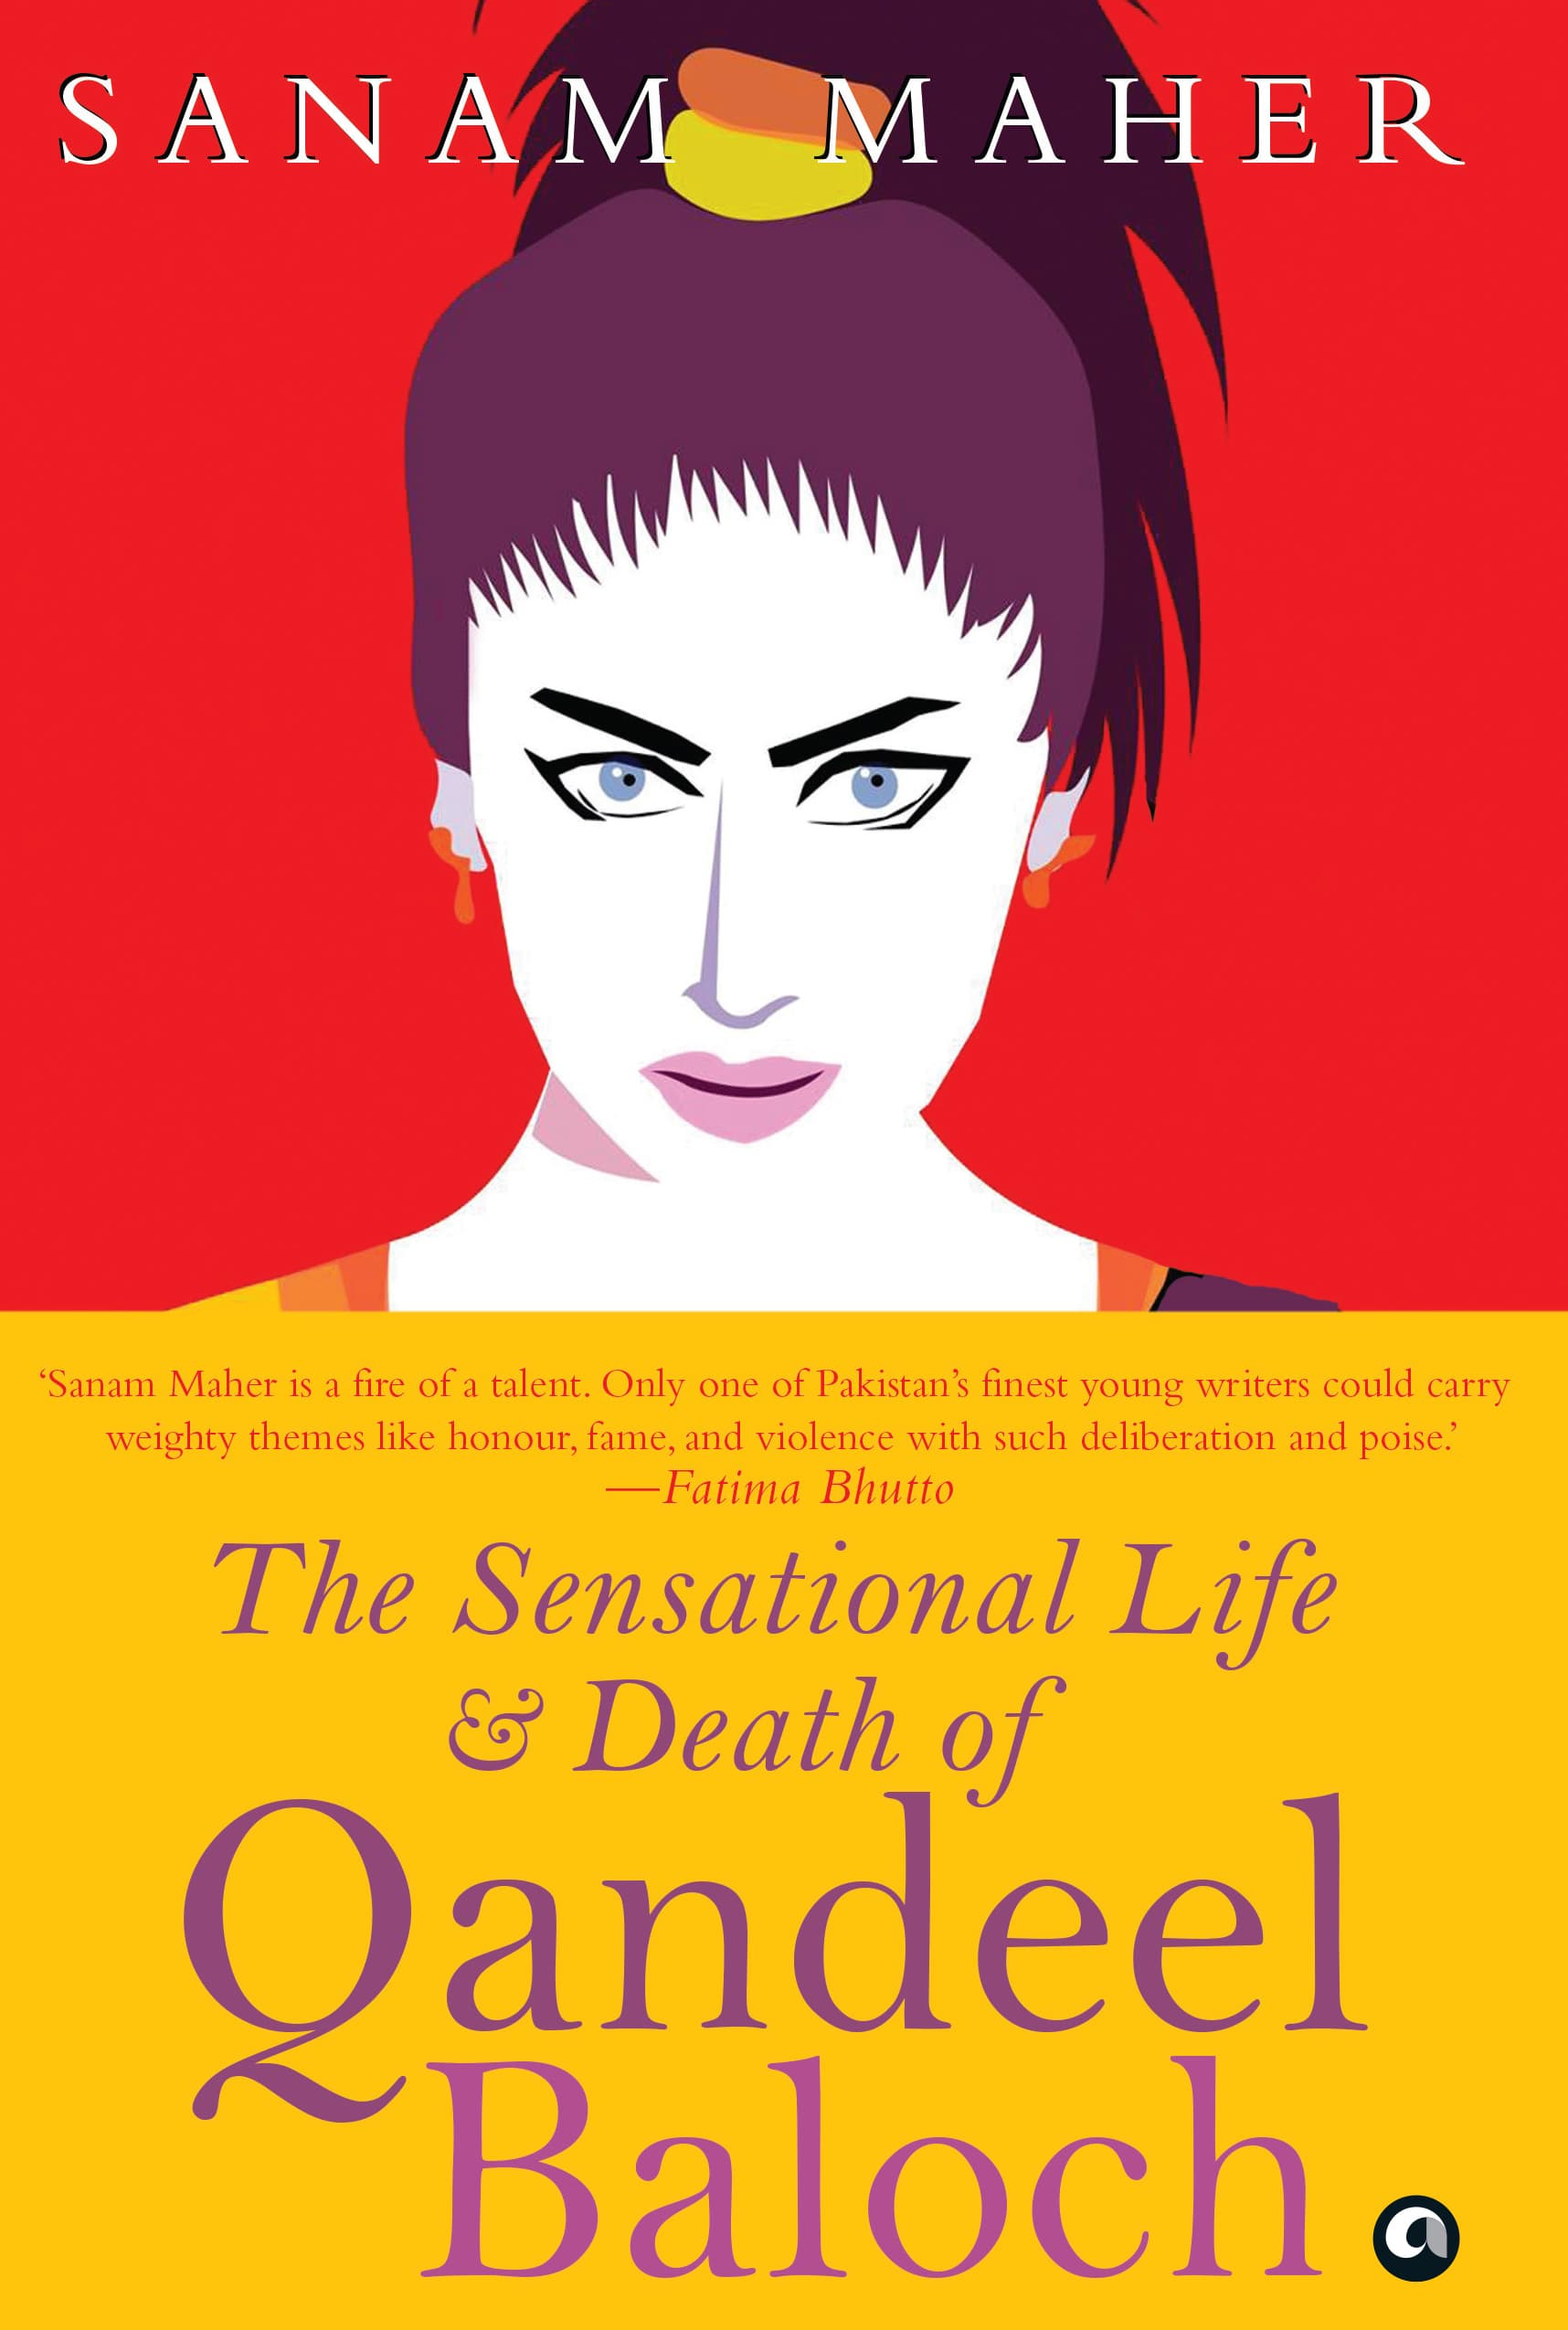 The Sensational Life And Death Of Qandeel Baloch.